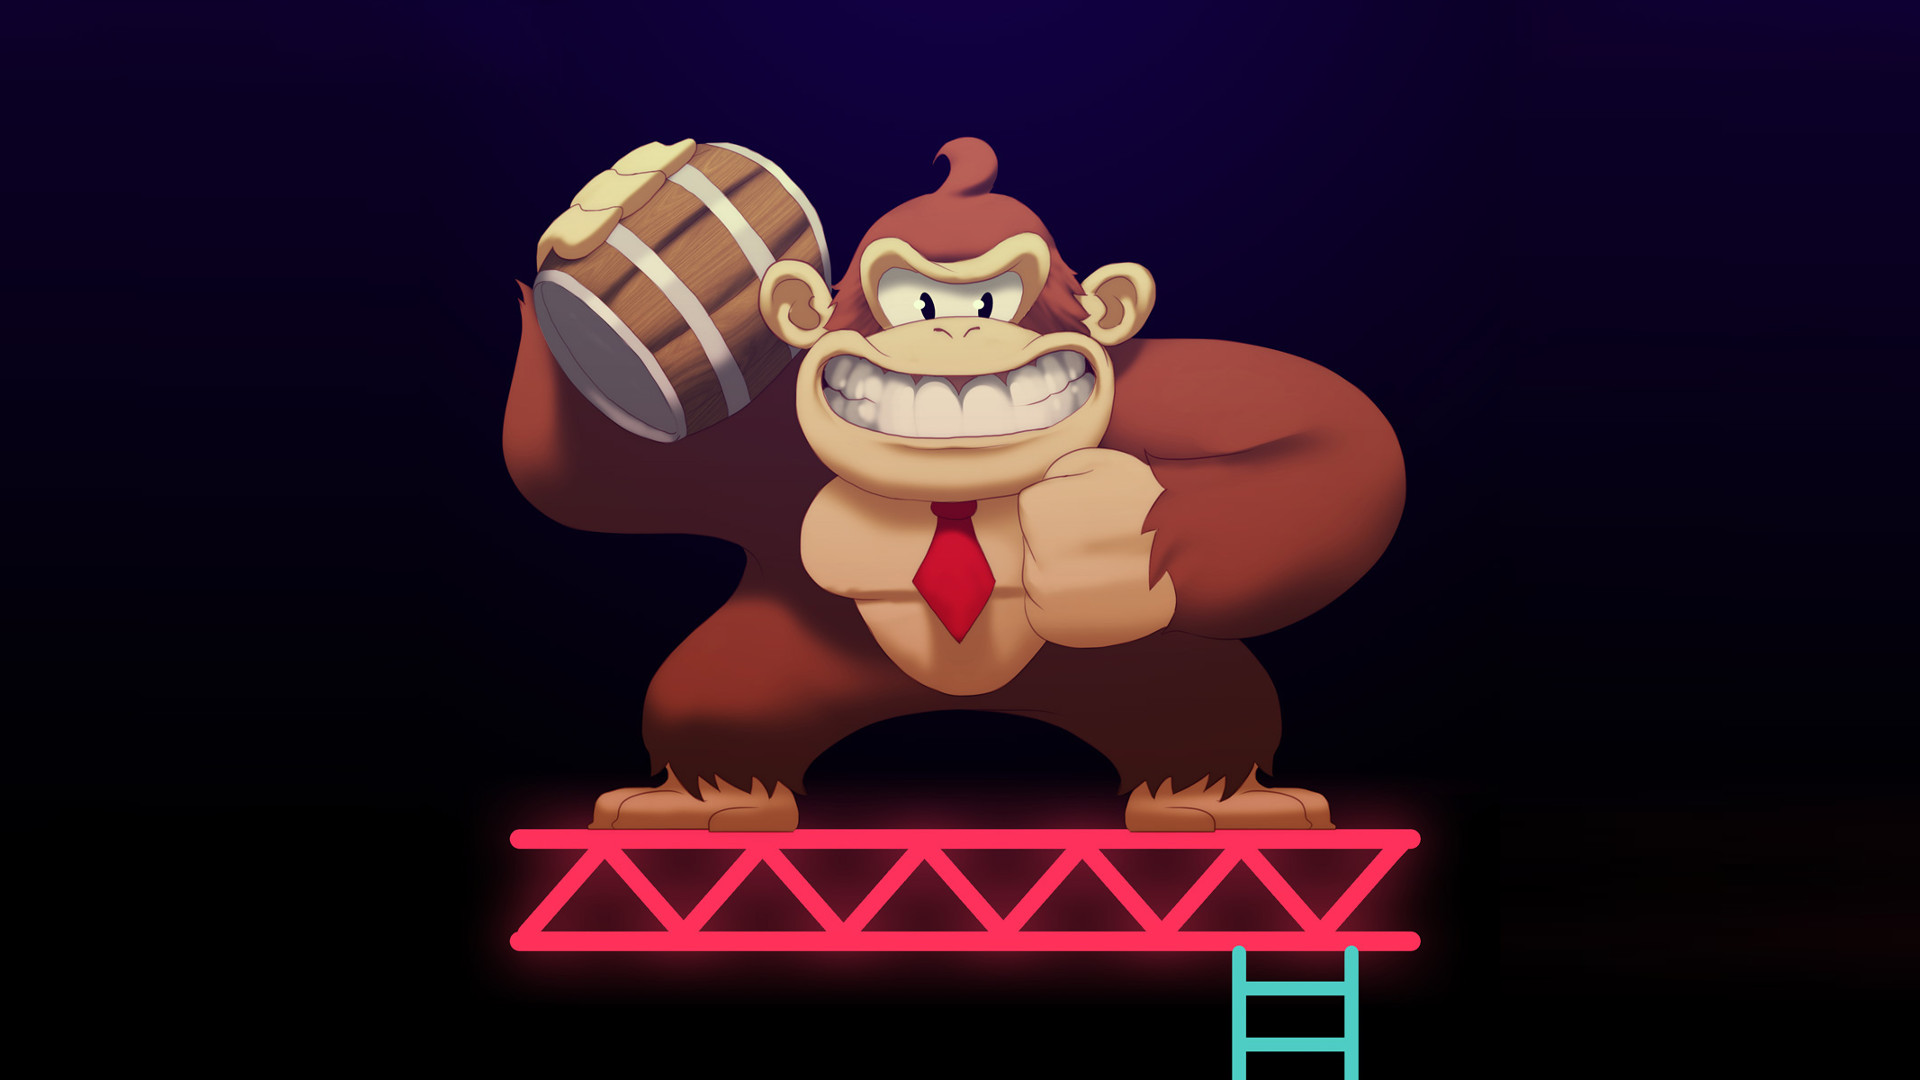 Gameboy Iphone X Wallpaper Donkey Kong Full Hd Wallpaper And Background Image